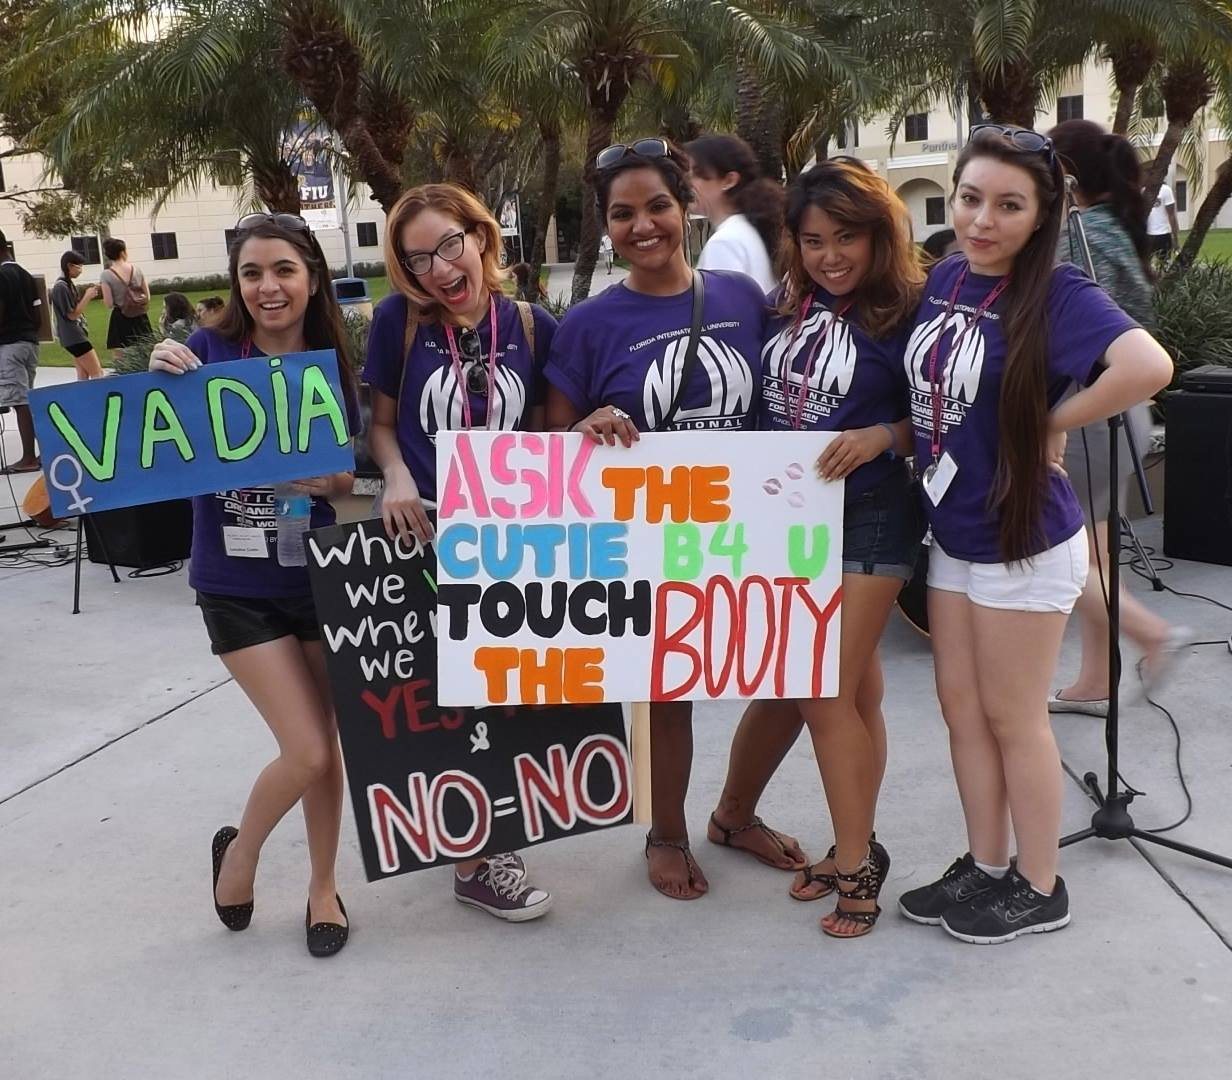 Miami SlutWalk Pictures - Miami SlutWalk Pictures